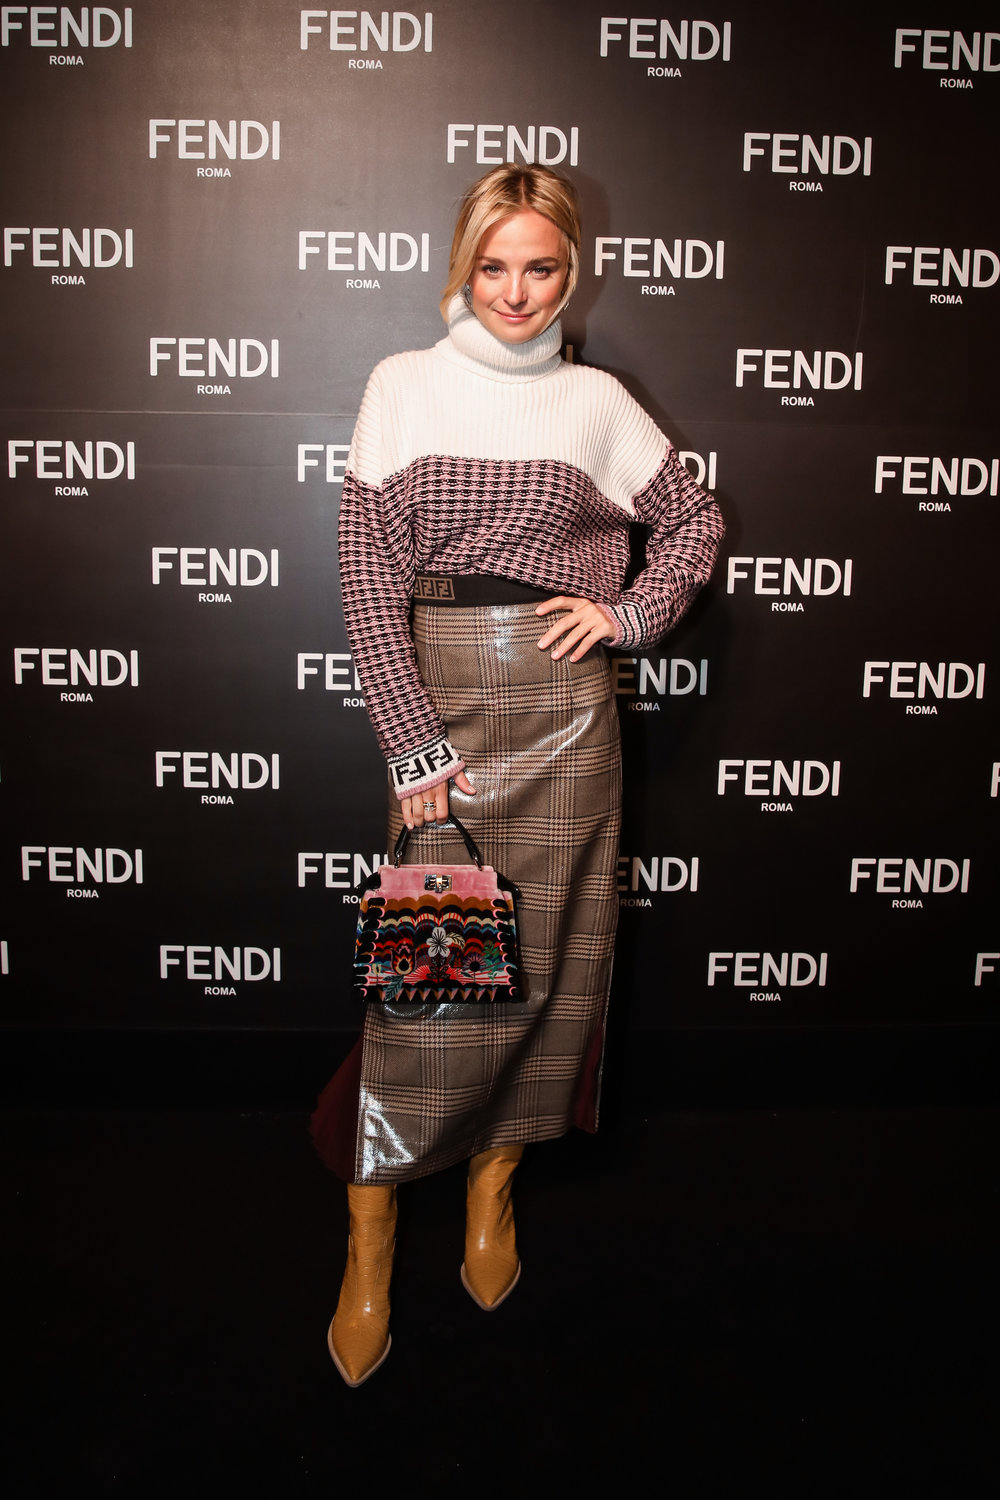 Nadia Fairfax Fendi Collins Street Launch 30.8.18-3252.jpg